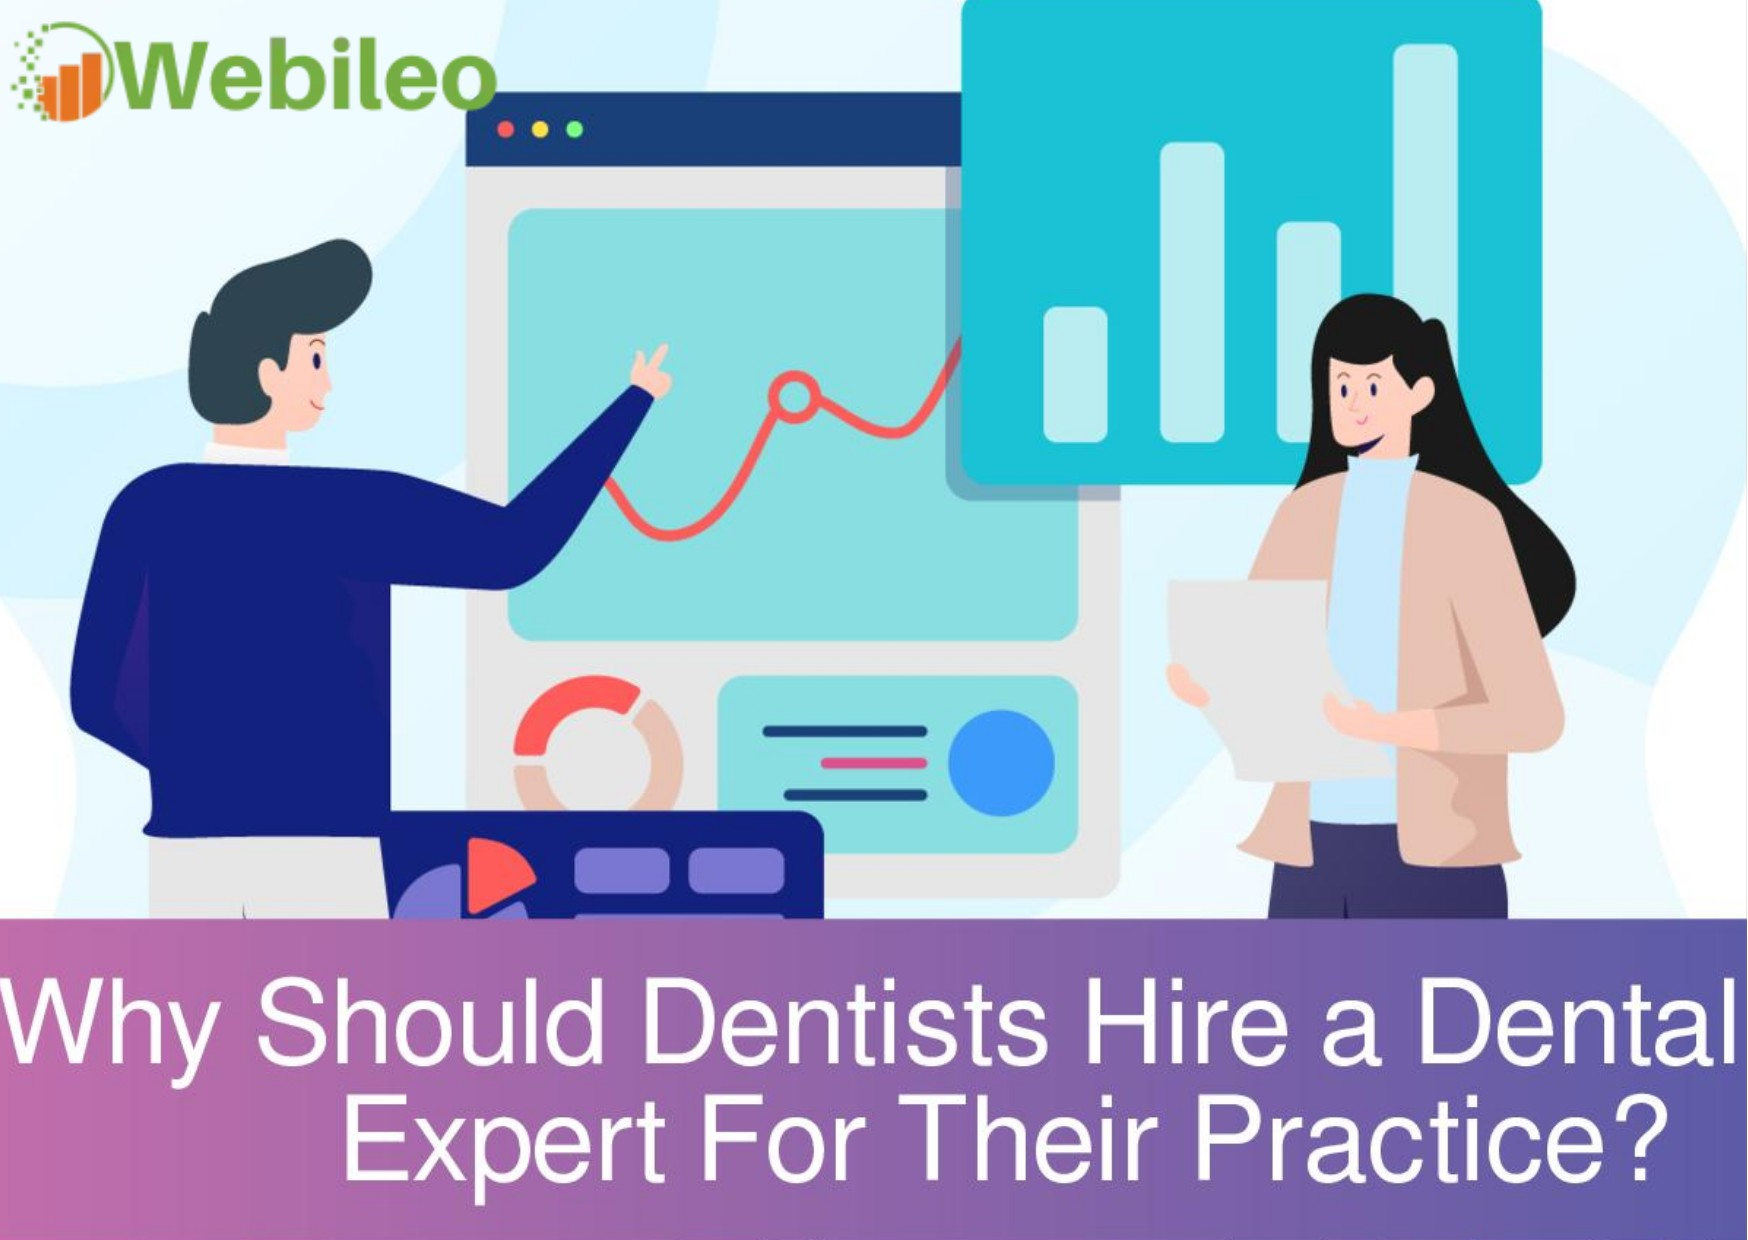 Why Should Dentists Hire A Dental Expert For Their Practice?